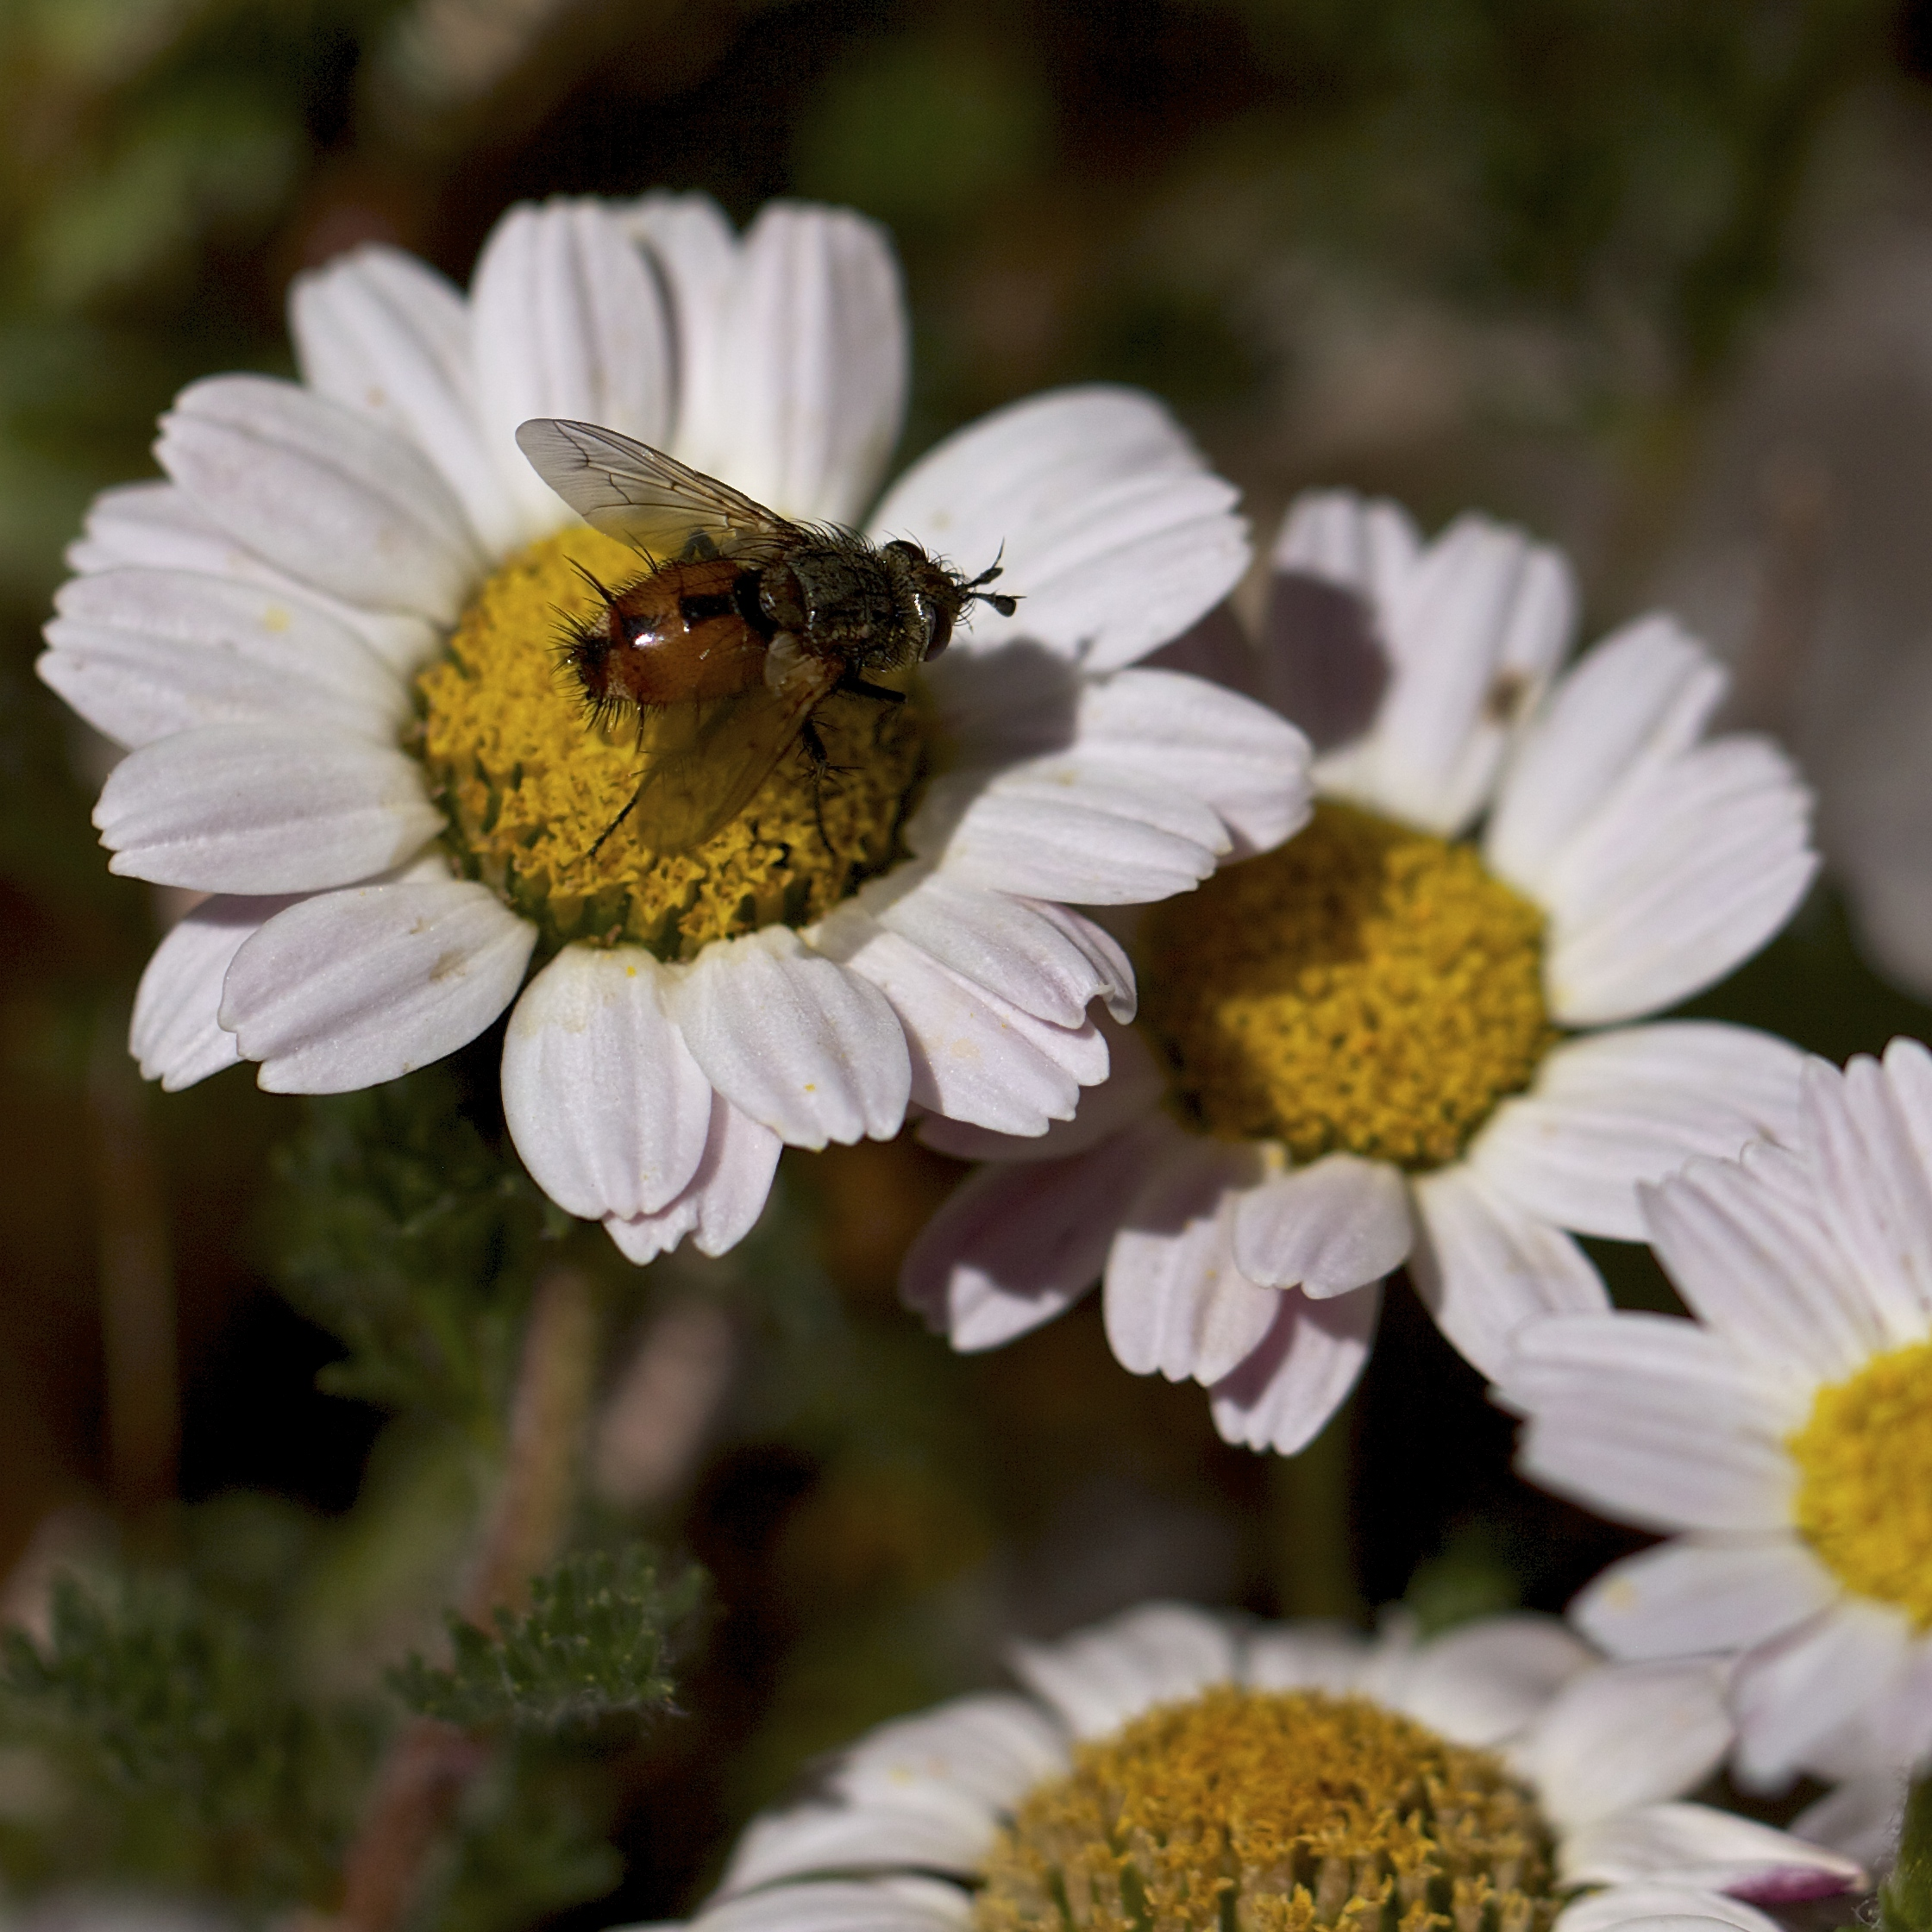 This little red fly also enjoys the mat daisies.